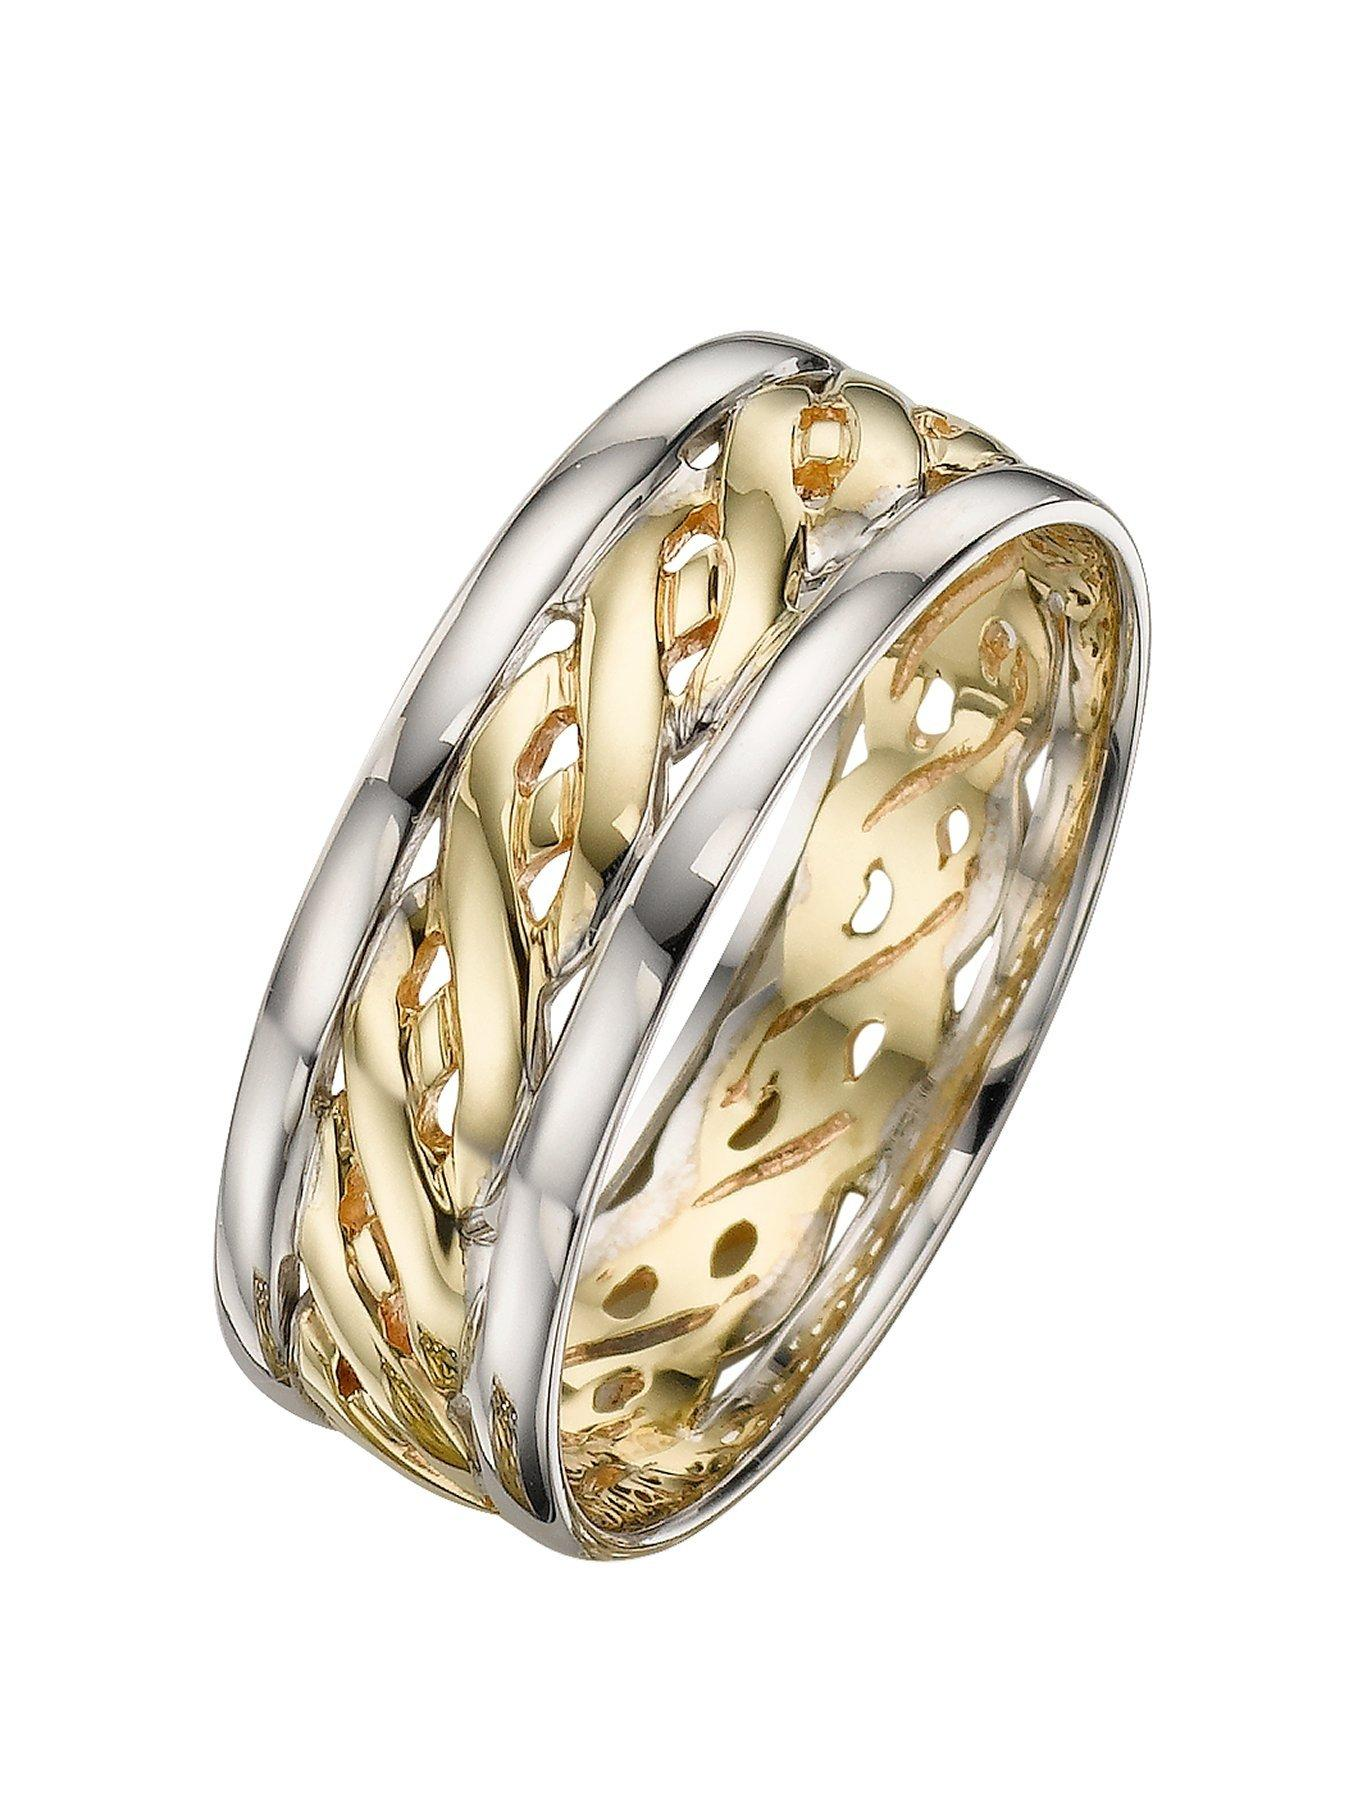 2 colour gold wedding rings